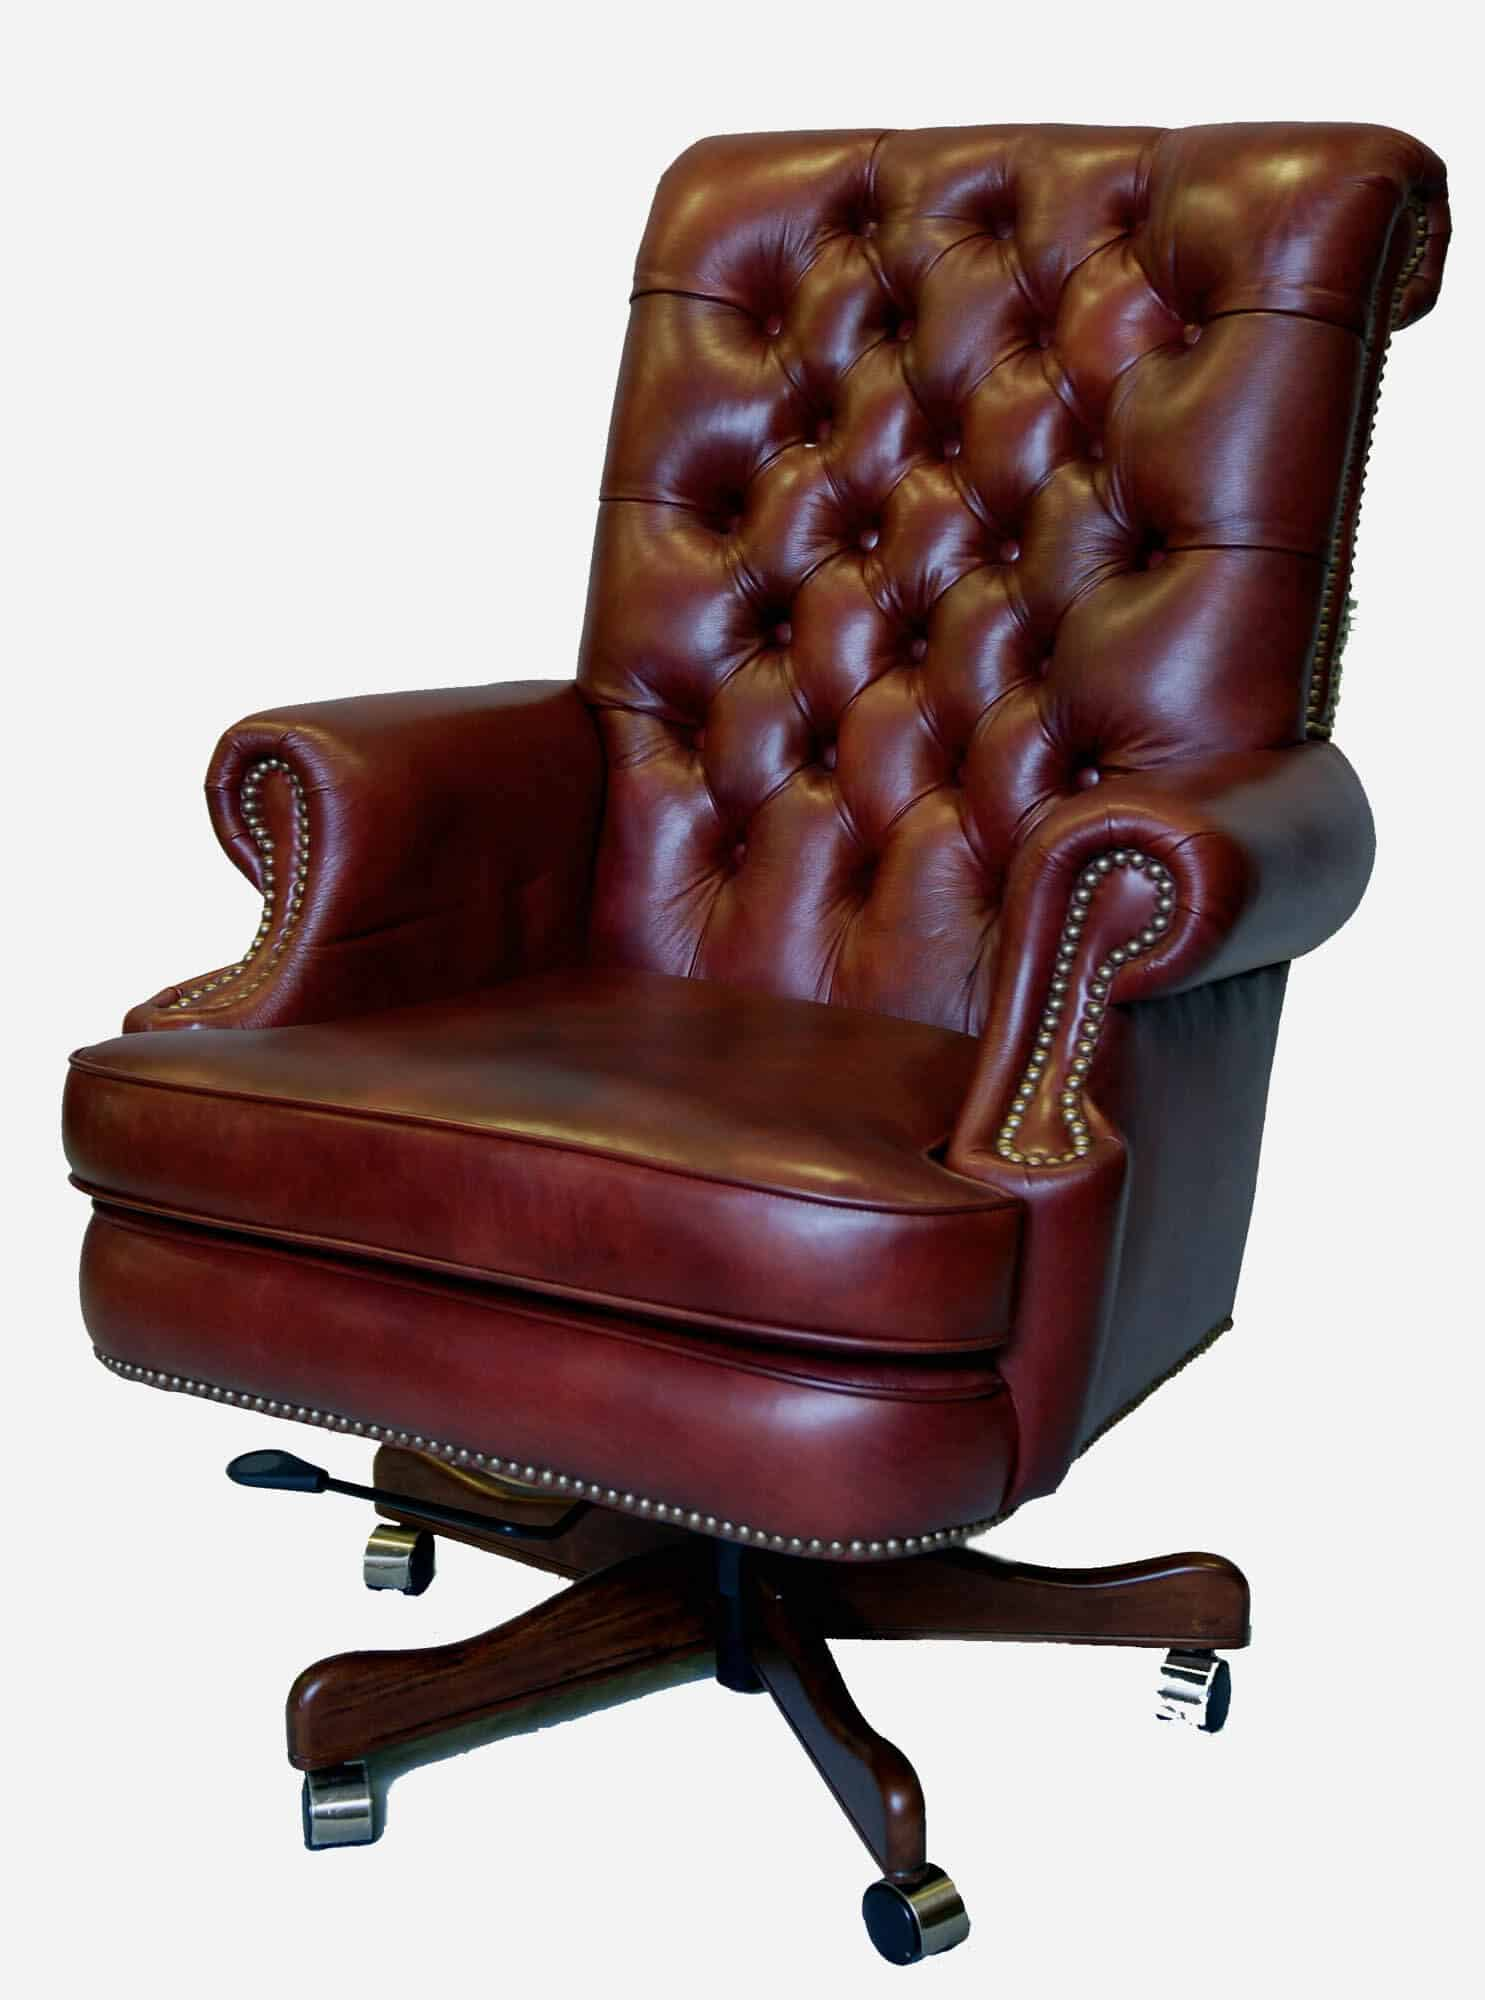 wooden executive office chairs gray stretch chair covers guide and how to buy a desk 43 top 10